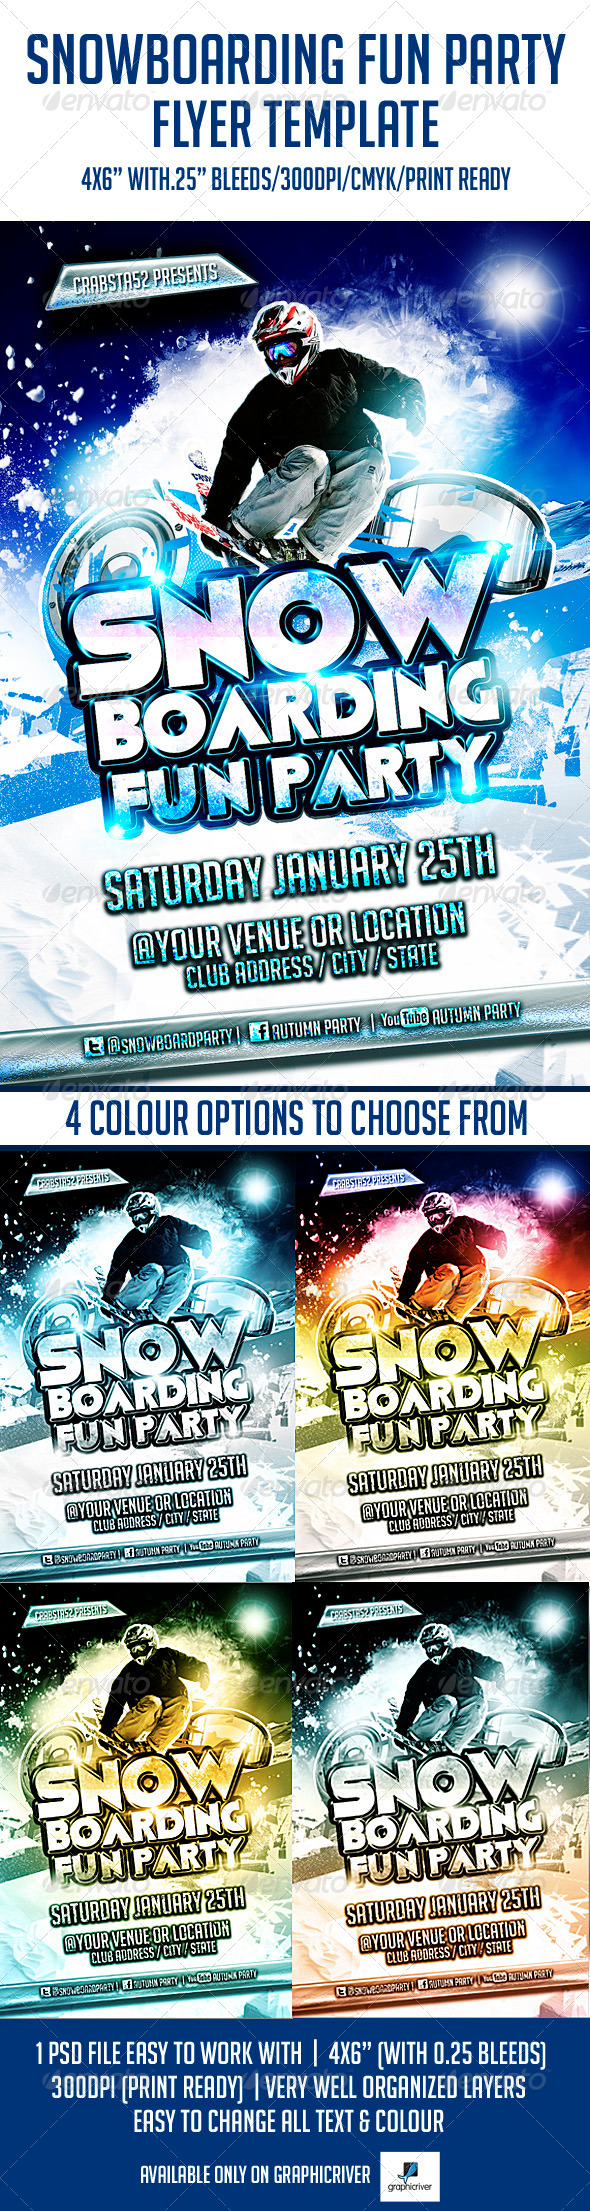 Snowboarding Fun Party Flyer Template - Flyers Print Templates